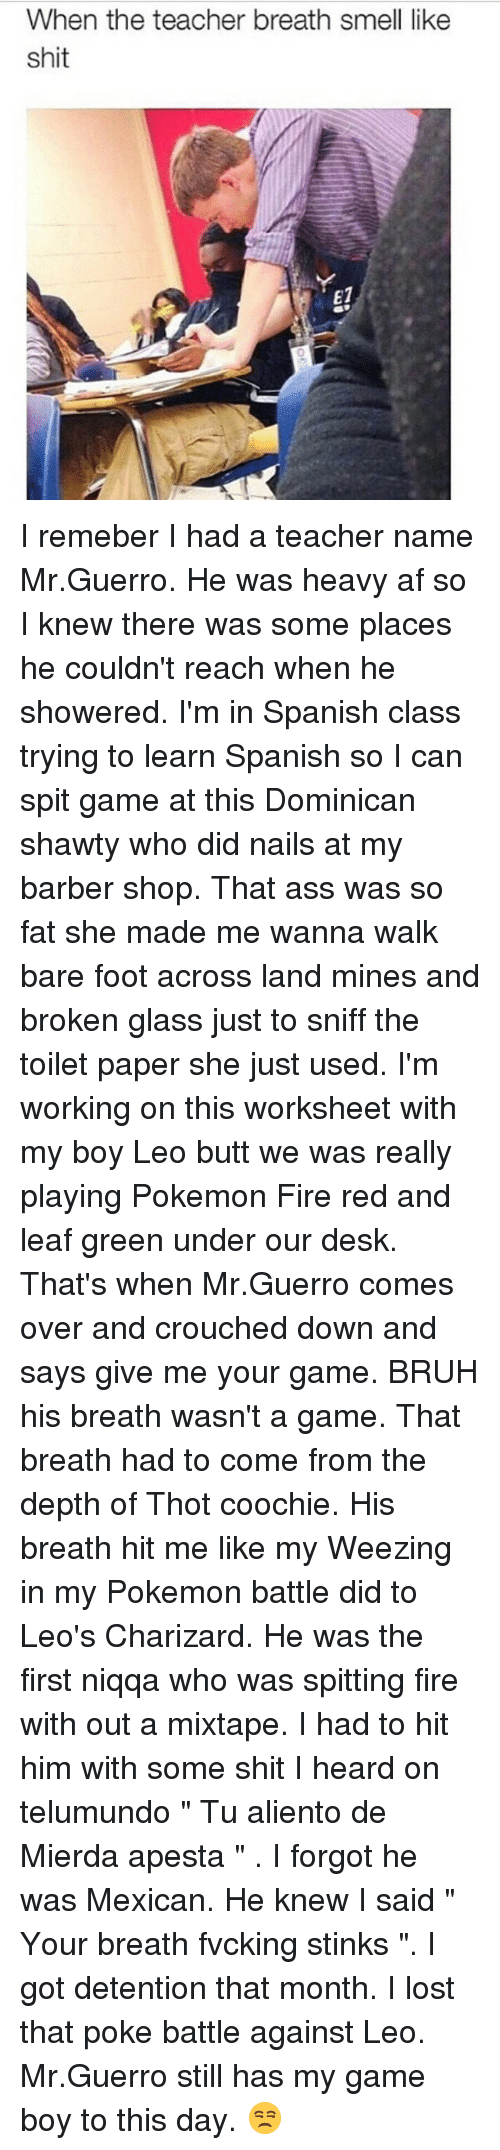 "spitting fire: When the teacher breath smell like  shit  E1  0 I remeber I had a teacher name Mr.Guerro. He was heavy af so I knew there was some places he couldn't reach when he showered. I'm in Spanish class trying to learn Spanish so I can spit game at this Dominican shawty who did nails at my barber shop. That ass was so fat she made me wanna walk bare foot across land mines and broken glass just to sniff the toilet paper she just used. I'm working on this worksheet with my boy Leo butt we was really playing Pokemon Fire red and leaf green under our desk. That's when Mr.Guerro comes over and crouched down and says give me your game. BRUH his breath wasn't a game. That breath had to come from the depth of Thot coochie. His breath hit me like my Weezing in my Pokemon battle did to Leo's Charizard. He was the first niqqa who was spitting fire with out a mixtape. I had to hit him with some shit I heard on telumundo "" Tu aliento de Mierda apesta "" . I forgot he was Mexican. He knew I said "" Your breath fvcking stinks "". I got detention that month. I lost that poke battle against Leo. Mr.Guerro still has my game boy to this day. 😒"